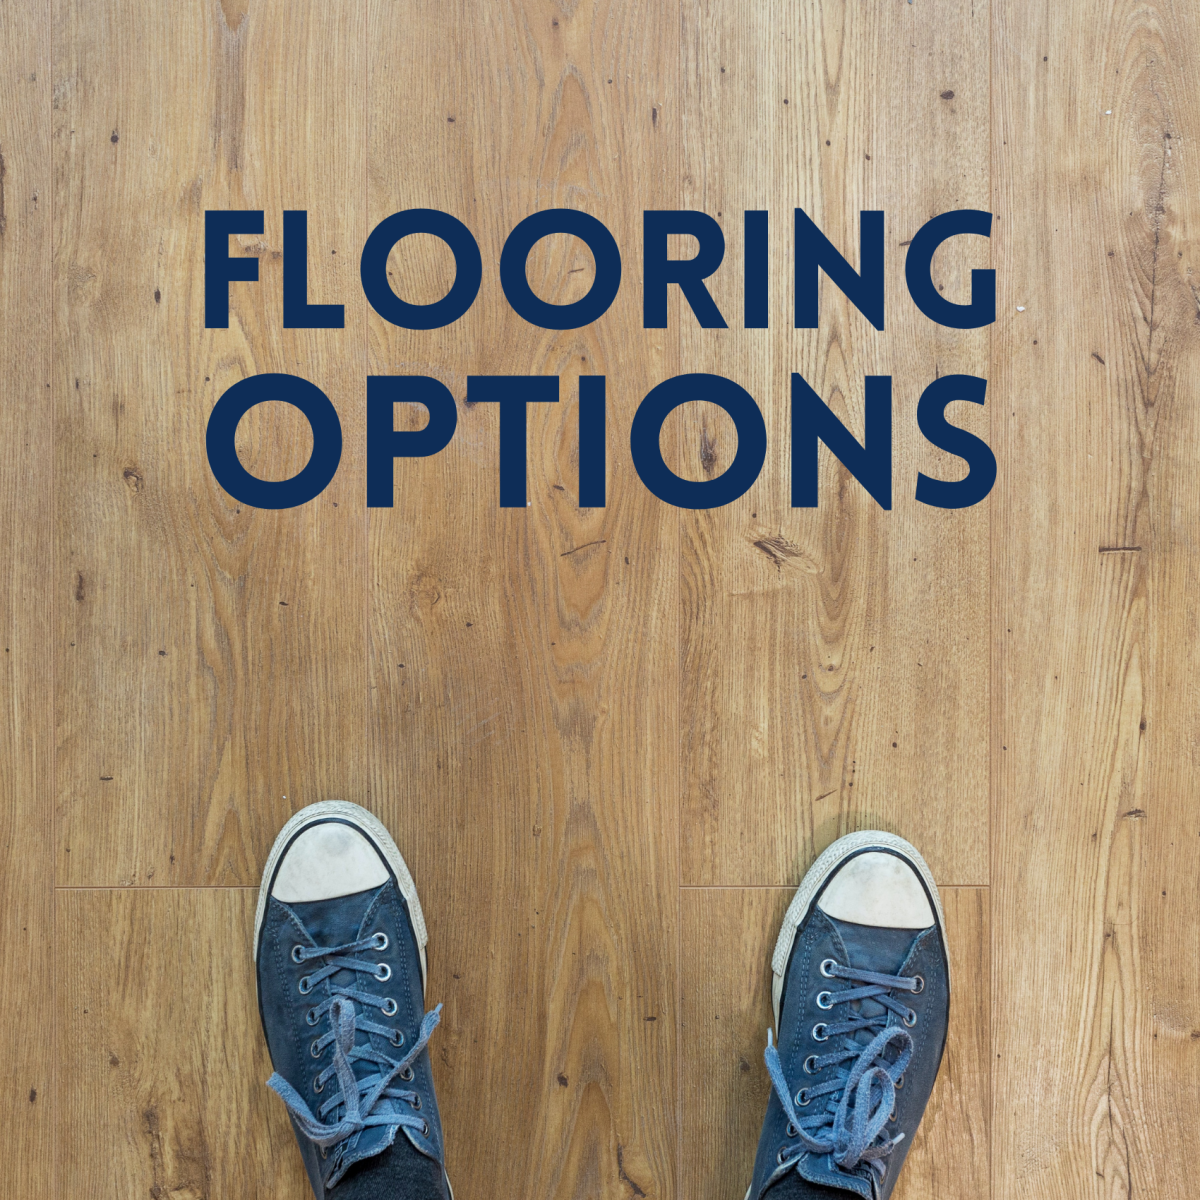 A list of residential flooring material options for homes.